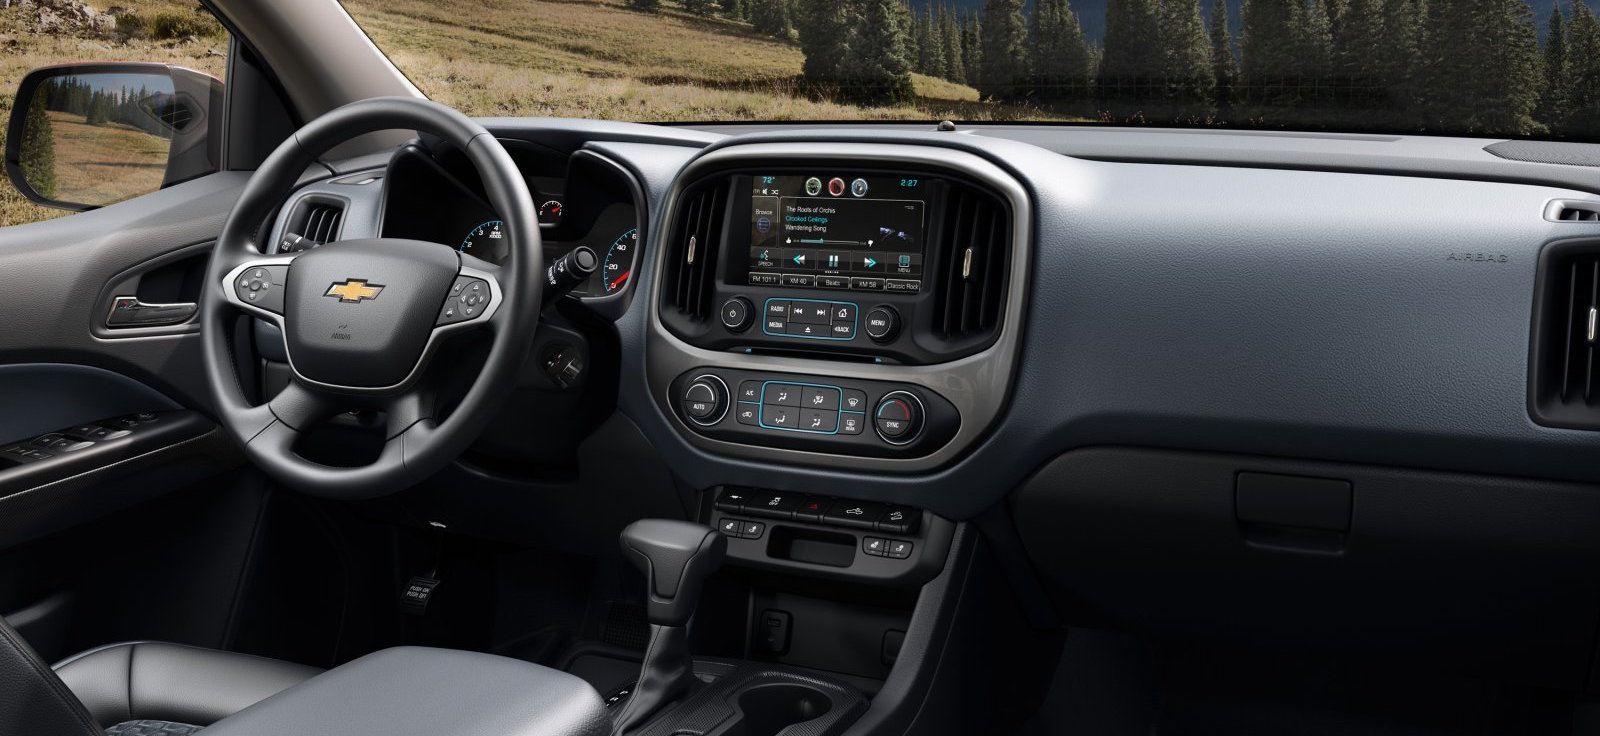 Black interior in the front of the 2017 Colorado, a touchscreen, and other tech are shown.